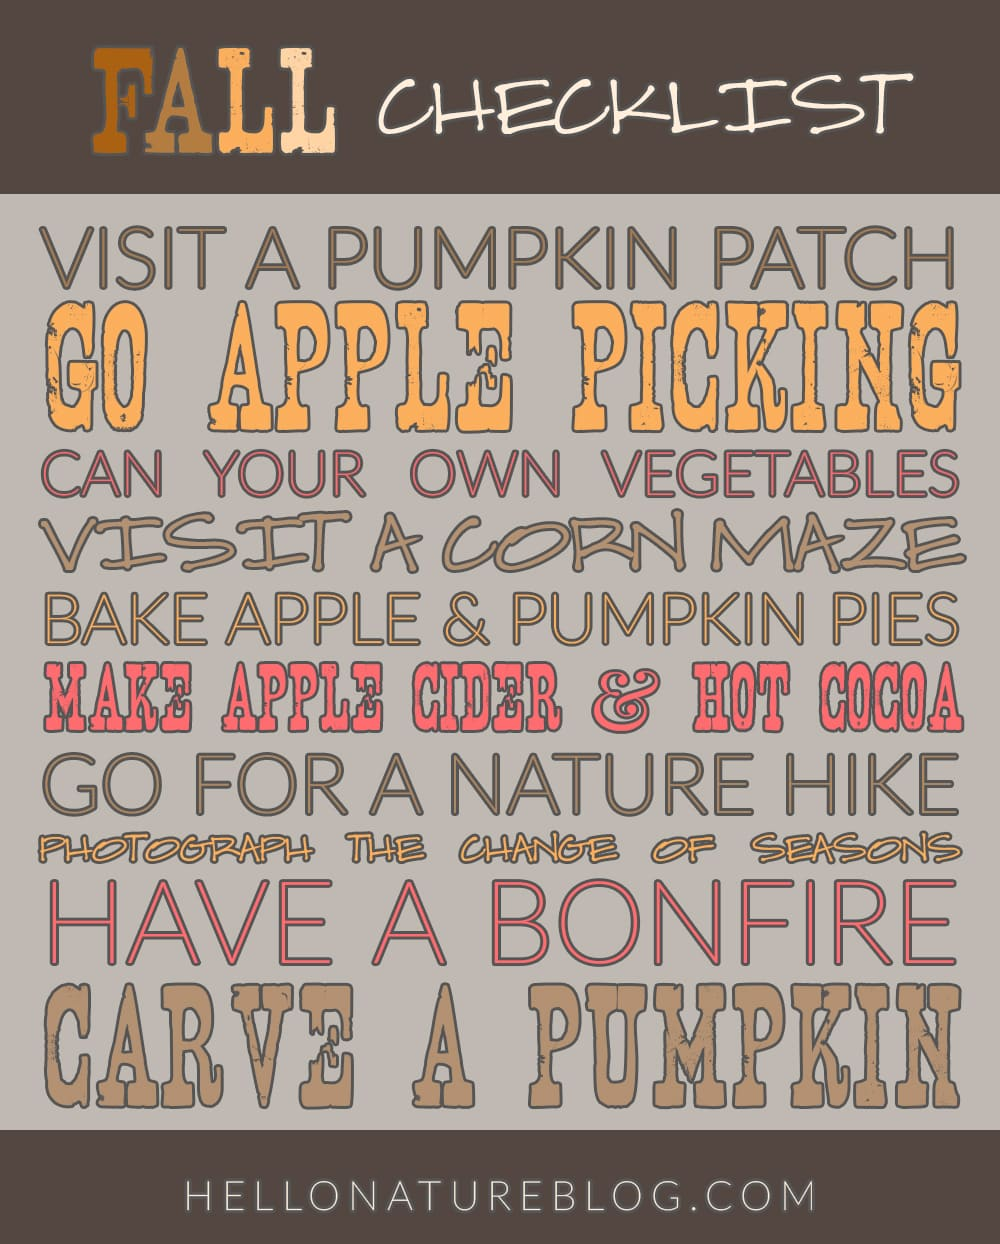 Now that Fall is here, here's a fall checklist full of wonderful fall activities.